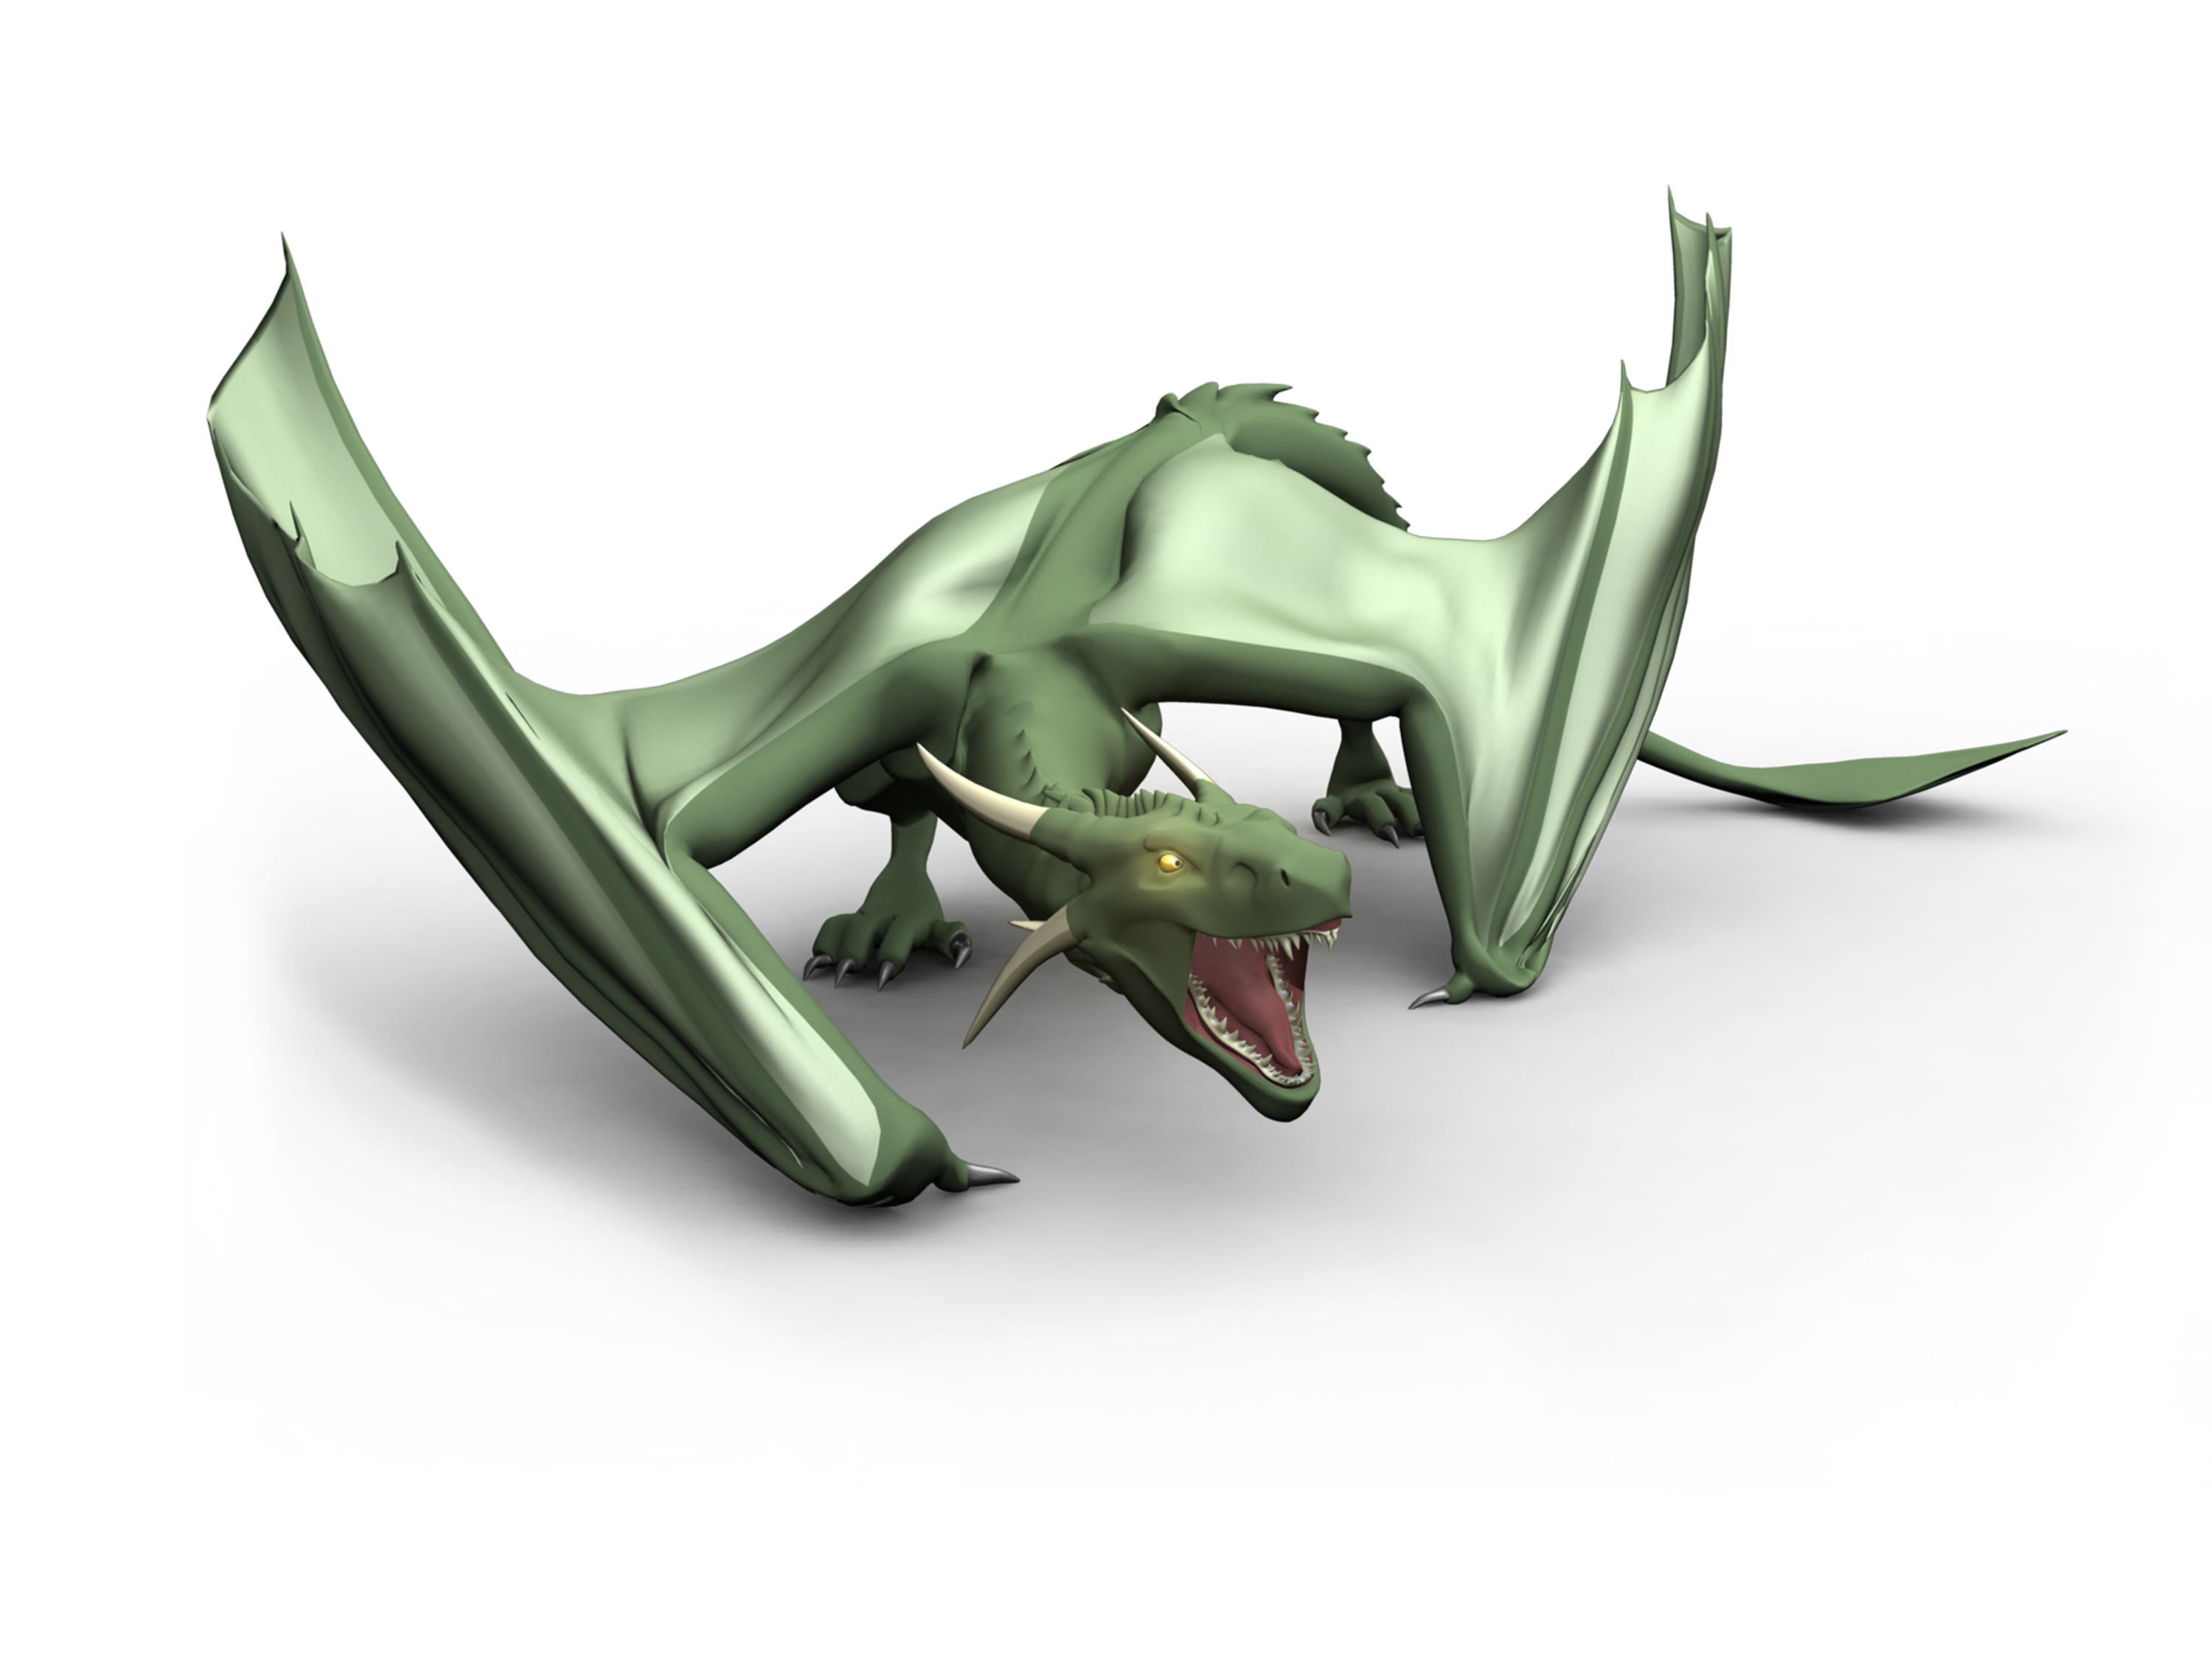 Animated Moving Pictures Of Dragons